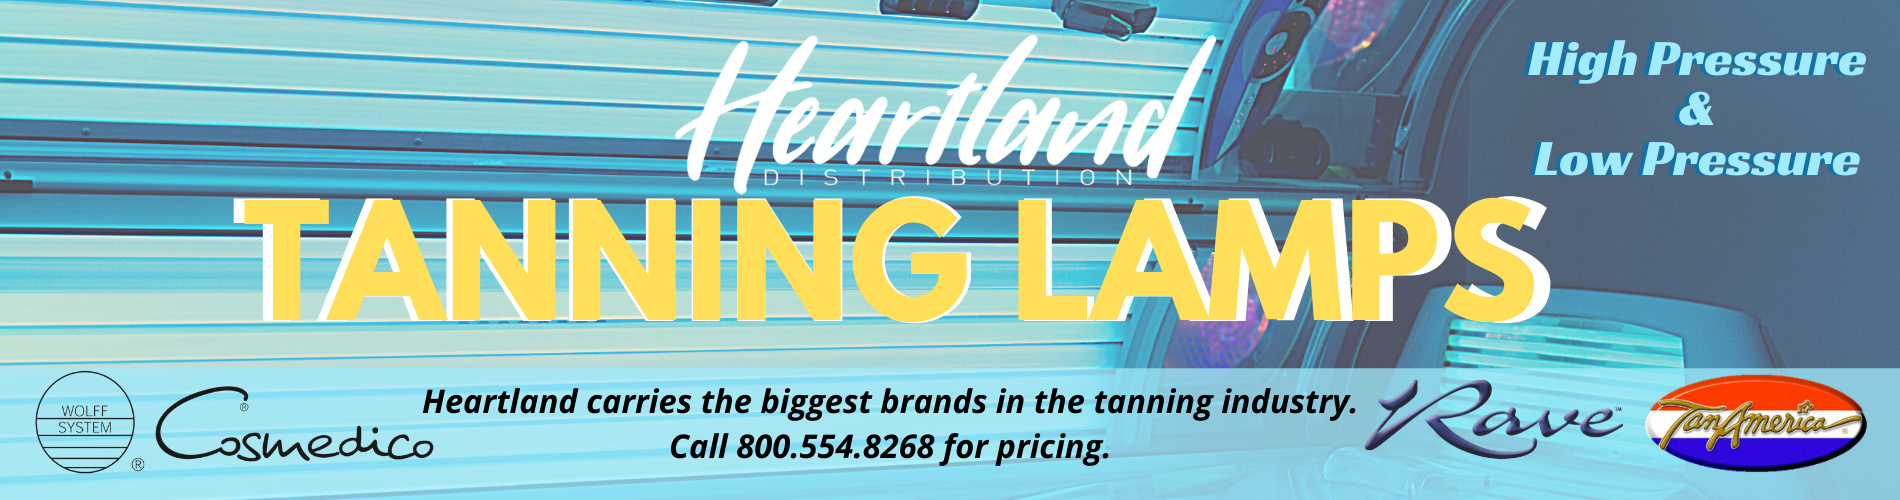 Heartland Tanning Lamps Banner